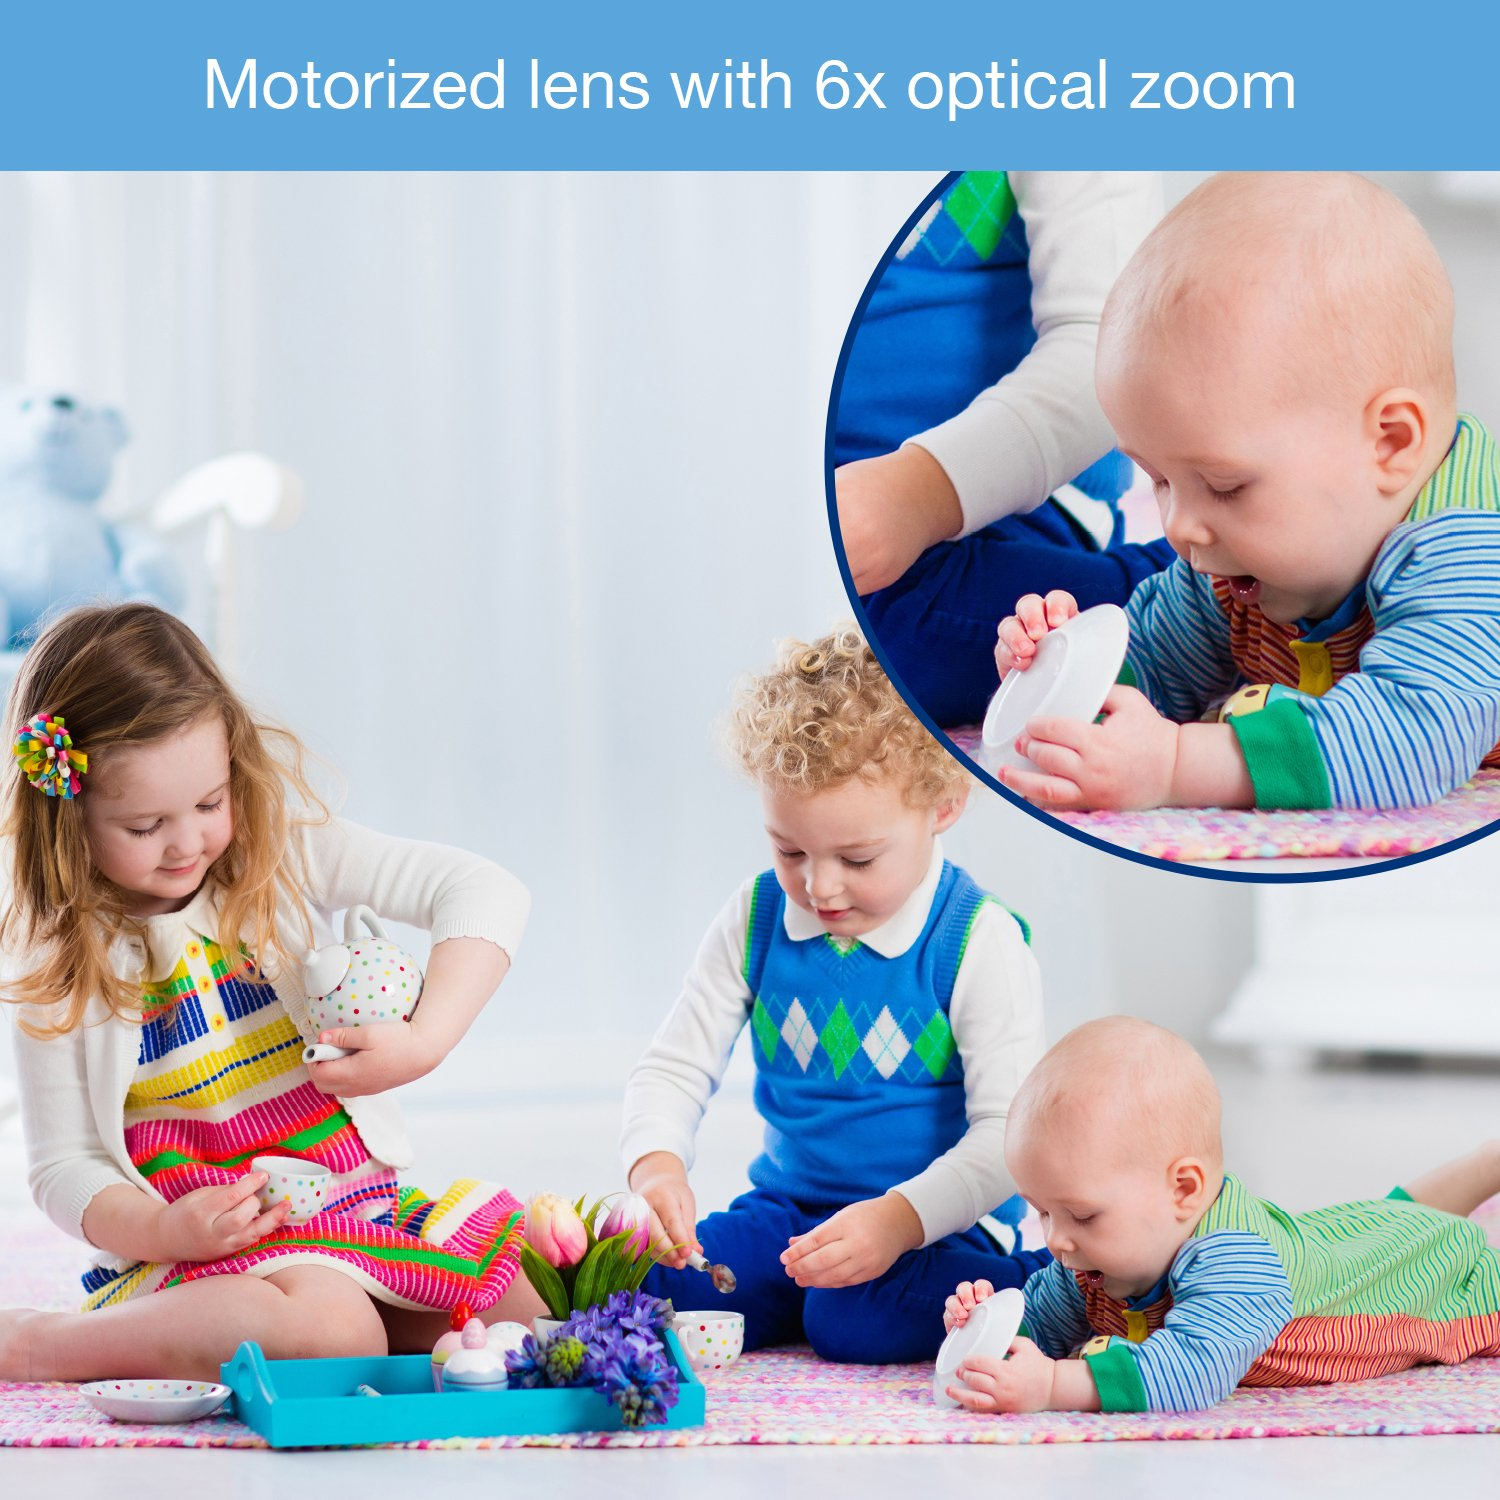 VTech VM5271-2 Video Baby Monitor with 5-inch Screen, Motorized Lens with 6x Optical Zoom, Soothing Sounds & Lullabies, Temperature Sensor & 1,000 feet of Range with 2 Cameras by VTech (Image #5)